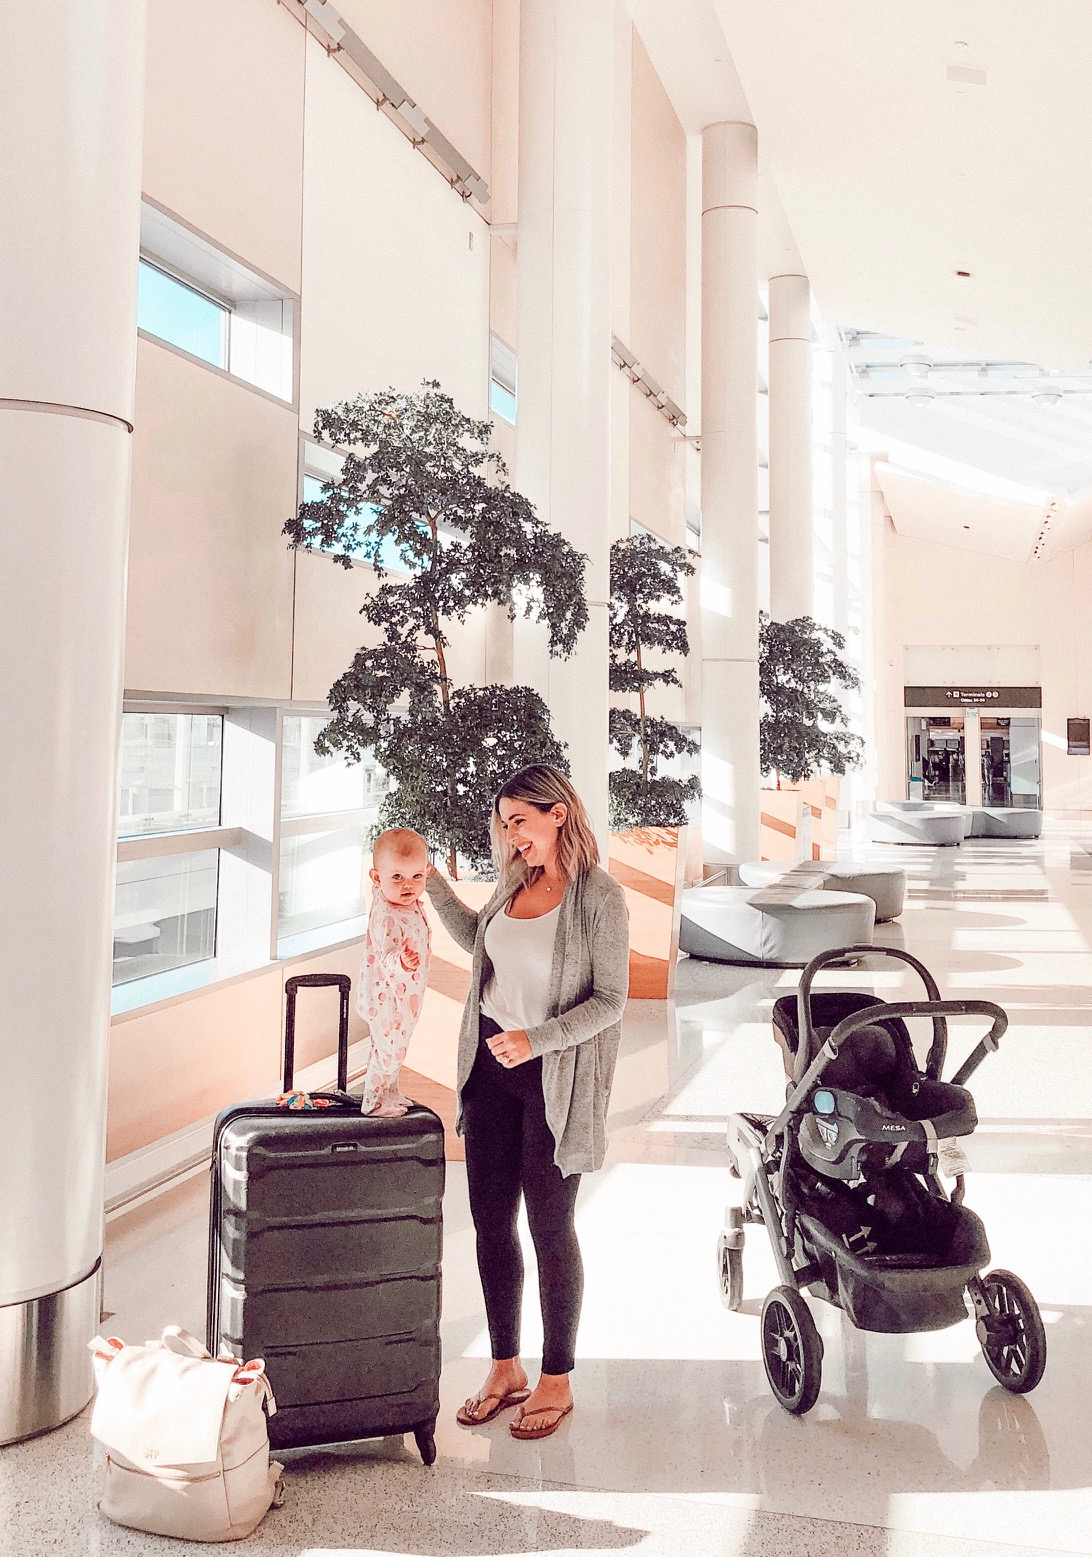 My top 10 tips for 'Flying with a Baby'